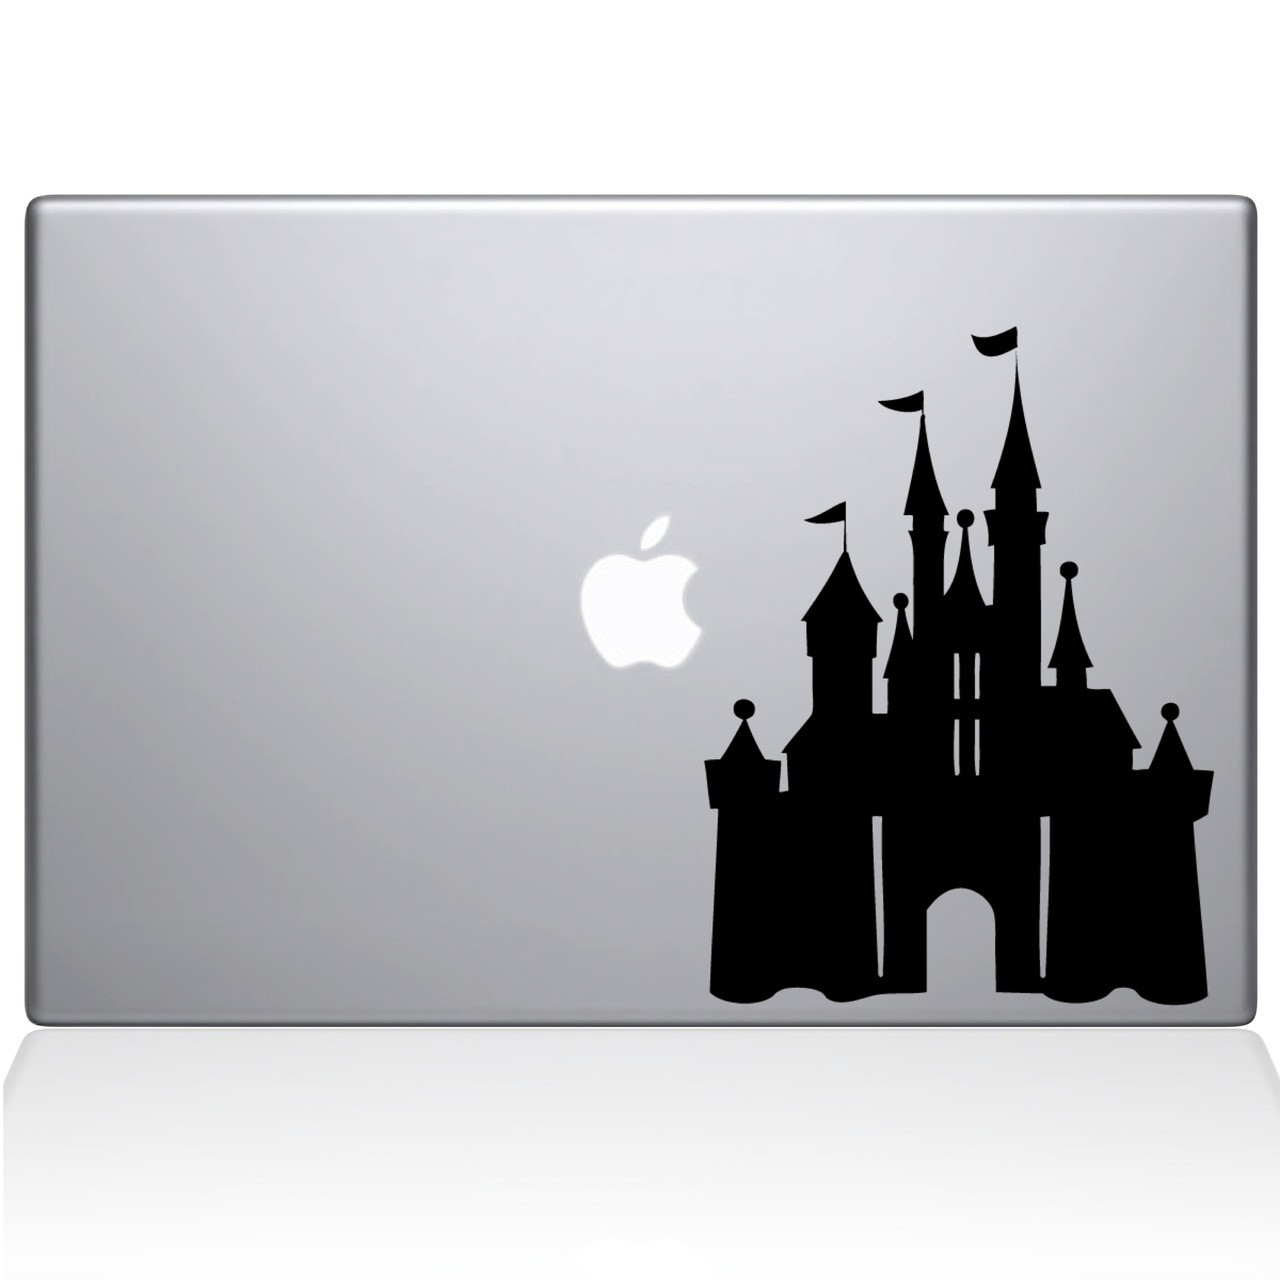 Disney castle macbook decal sticker black